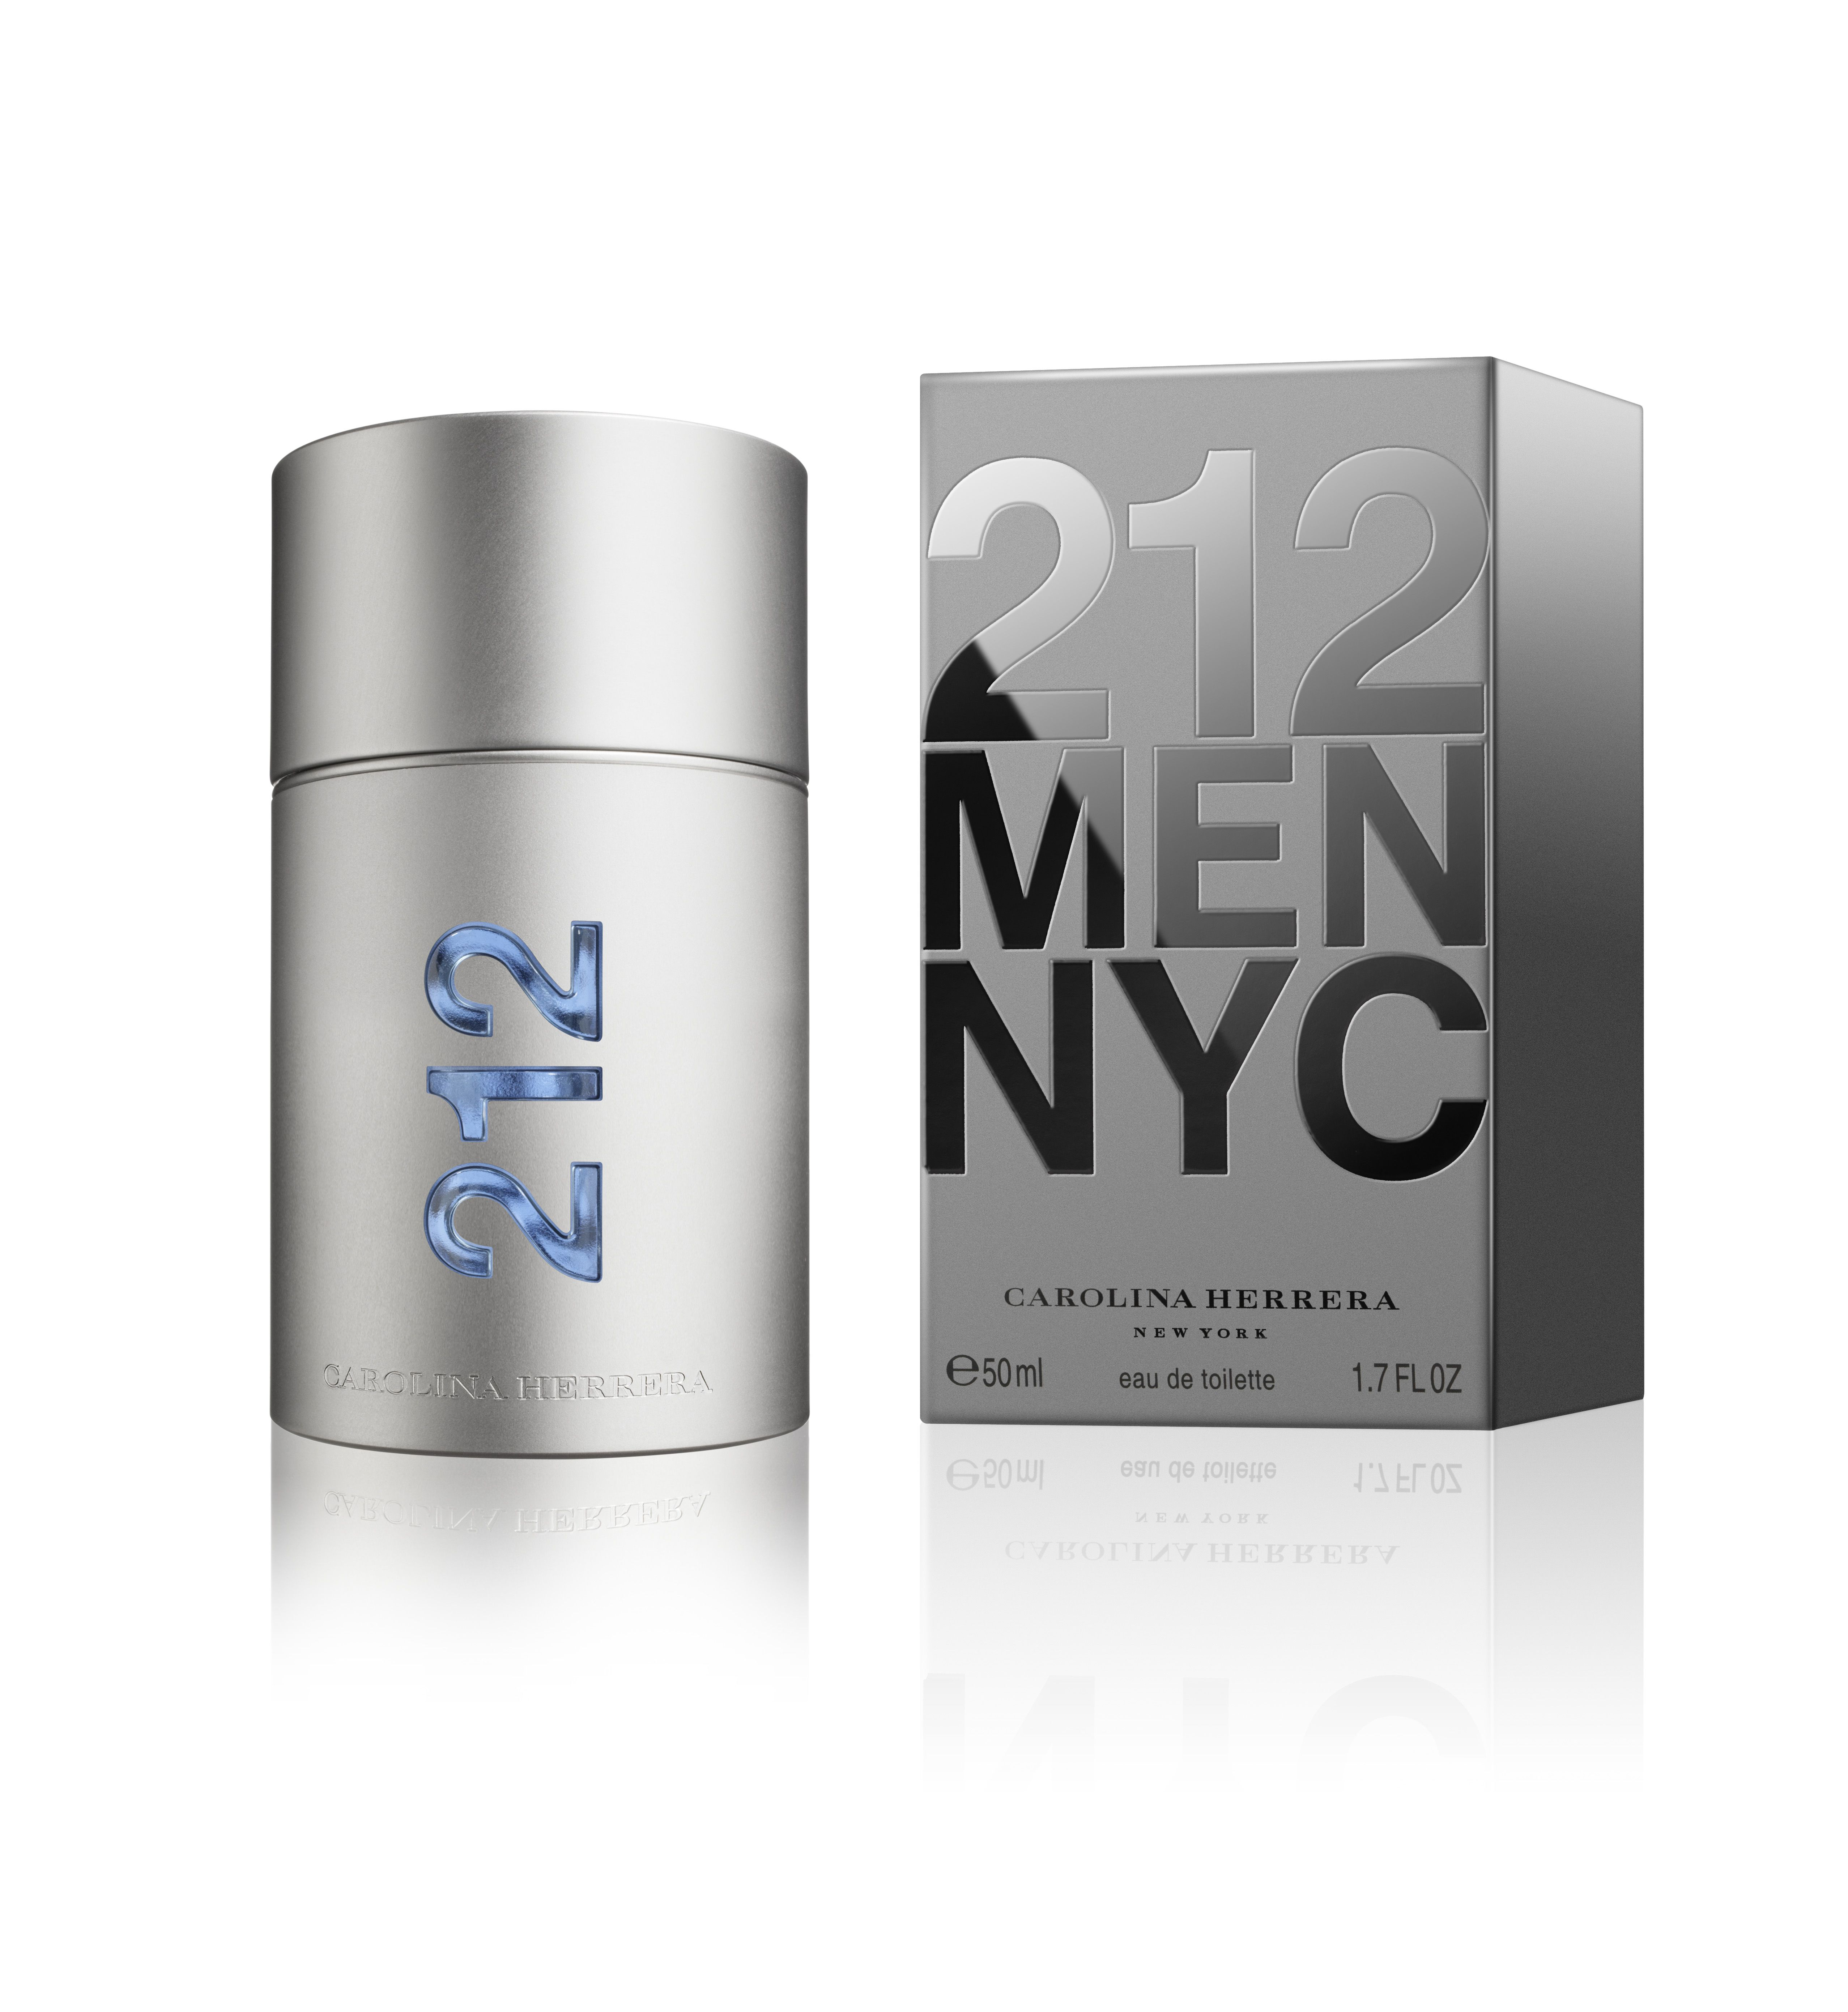 It's Perfume Madness at Stuttafords! The new 212 Men